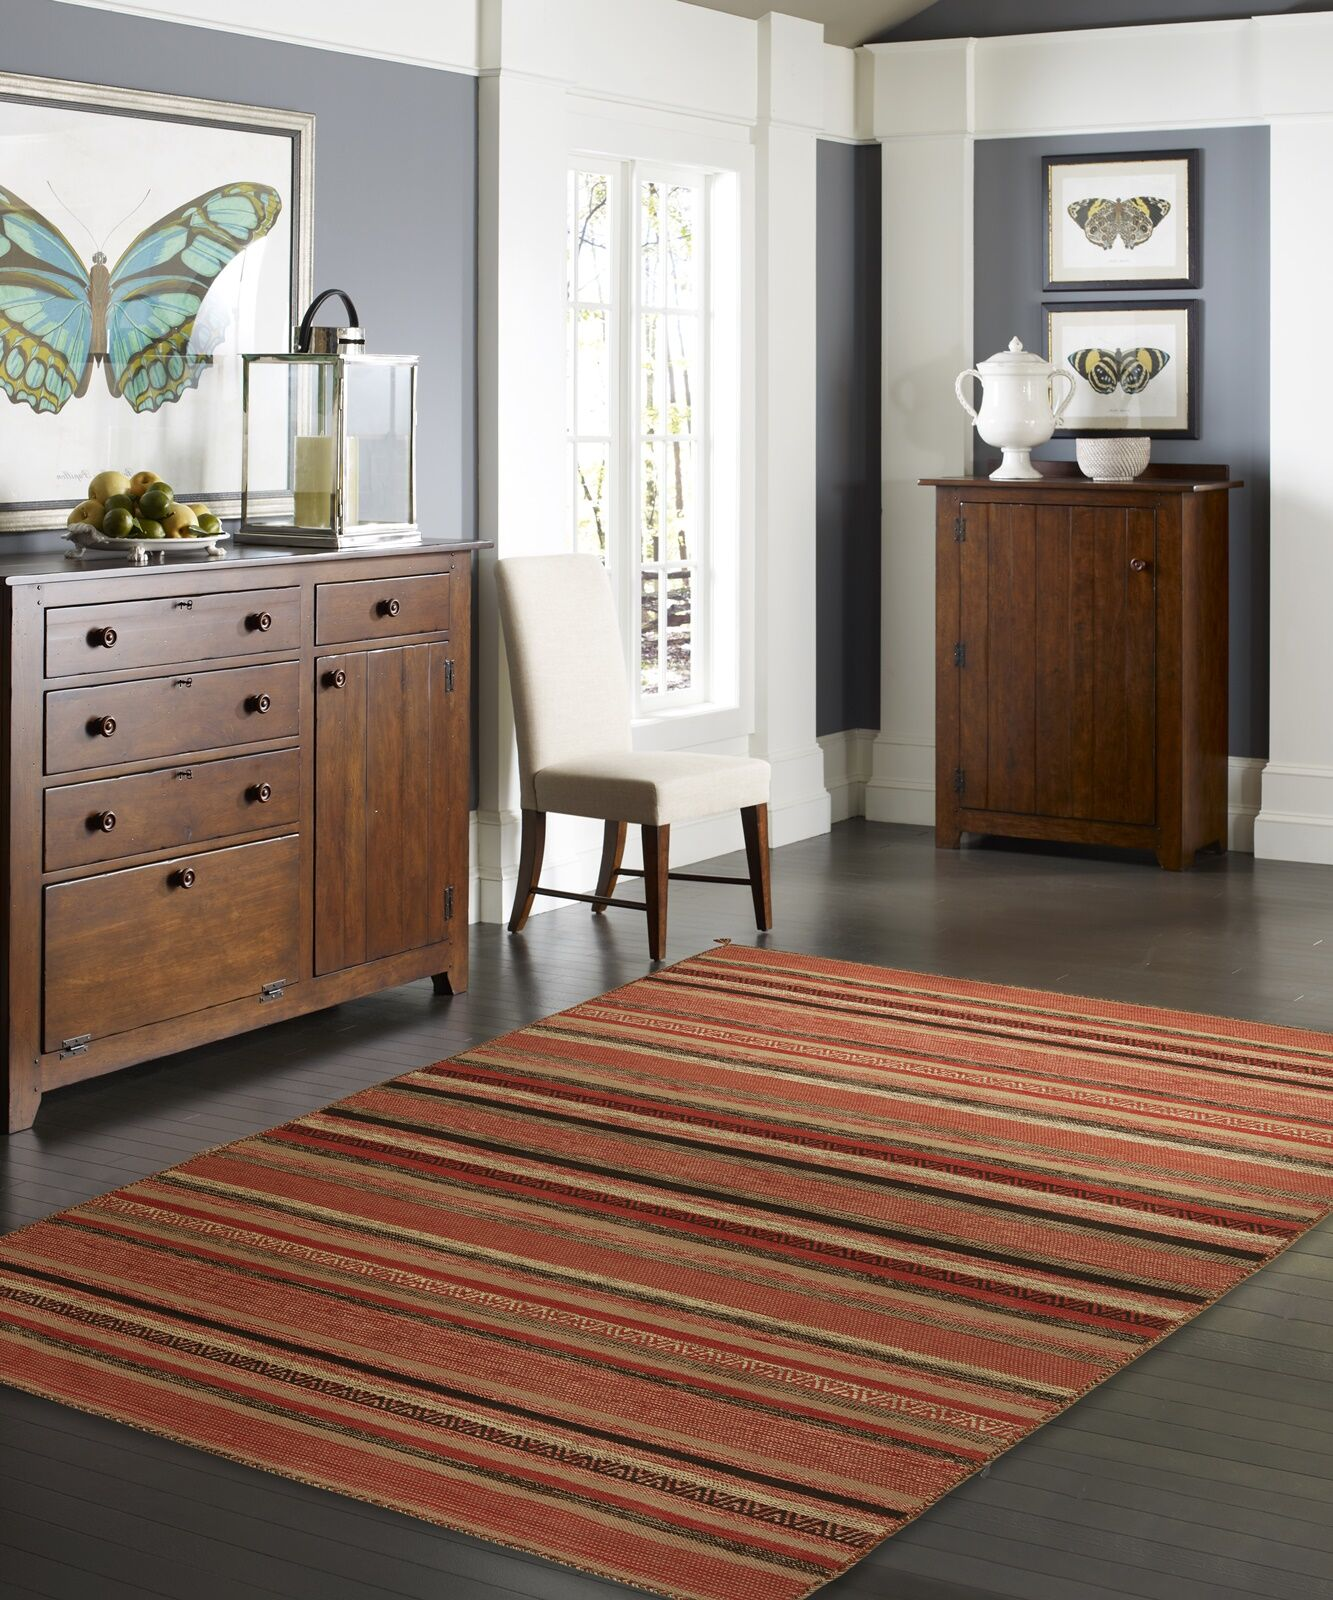 Dockrey Hand-Knotted Cotton Rust Area Rug Rug Size: Rectangle 8'6